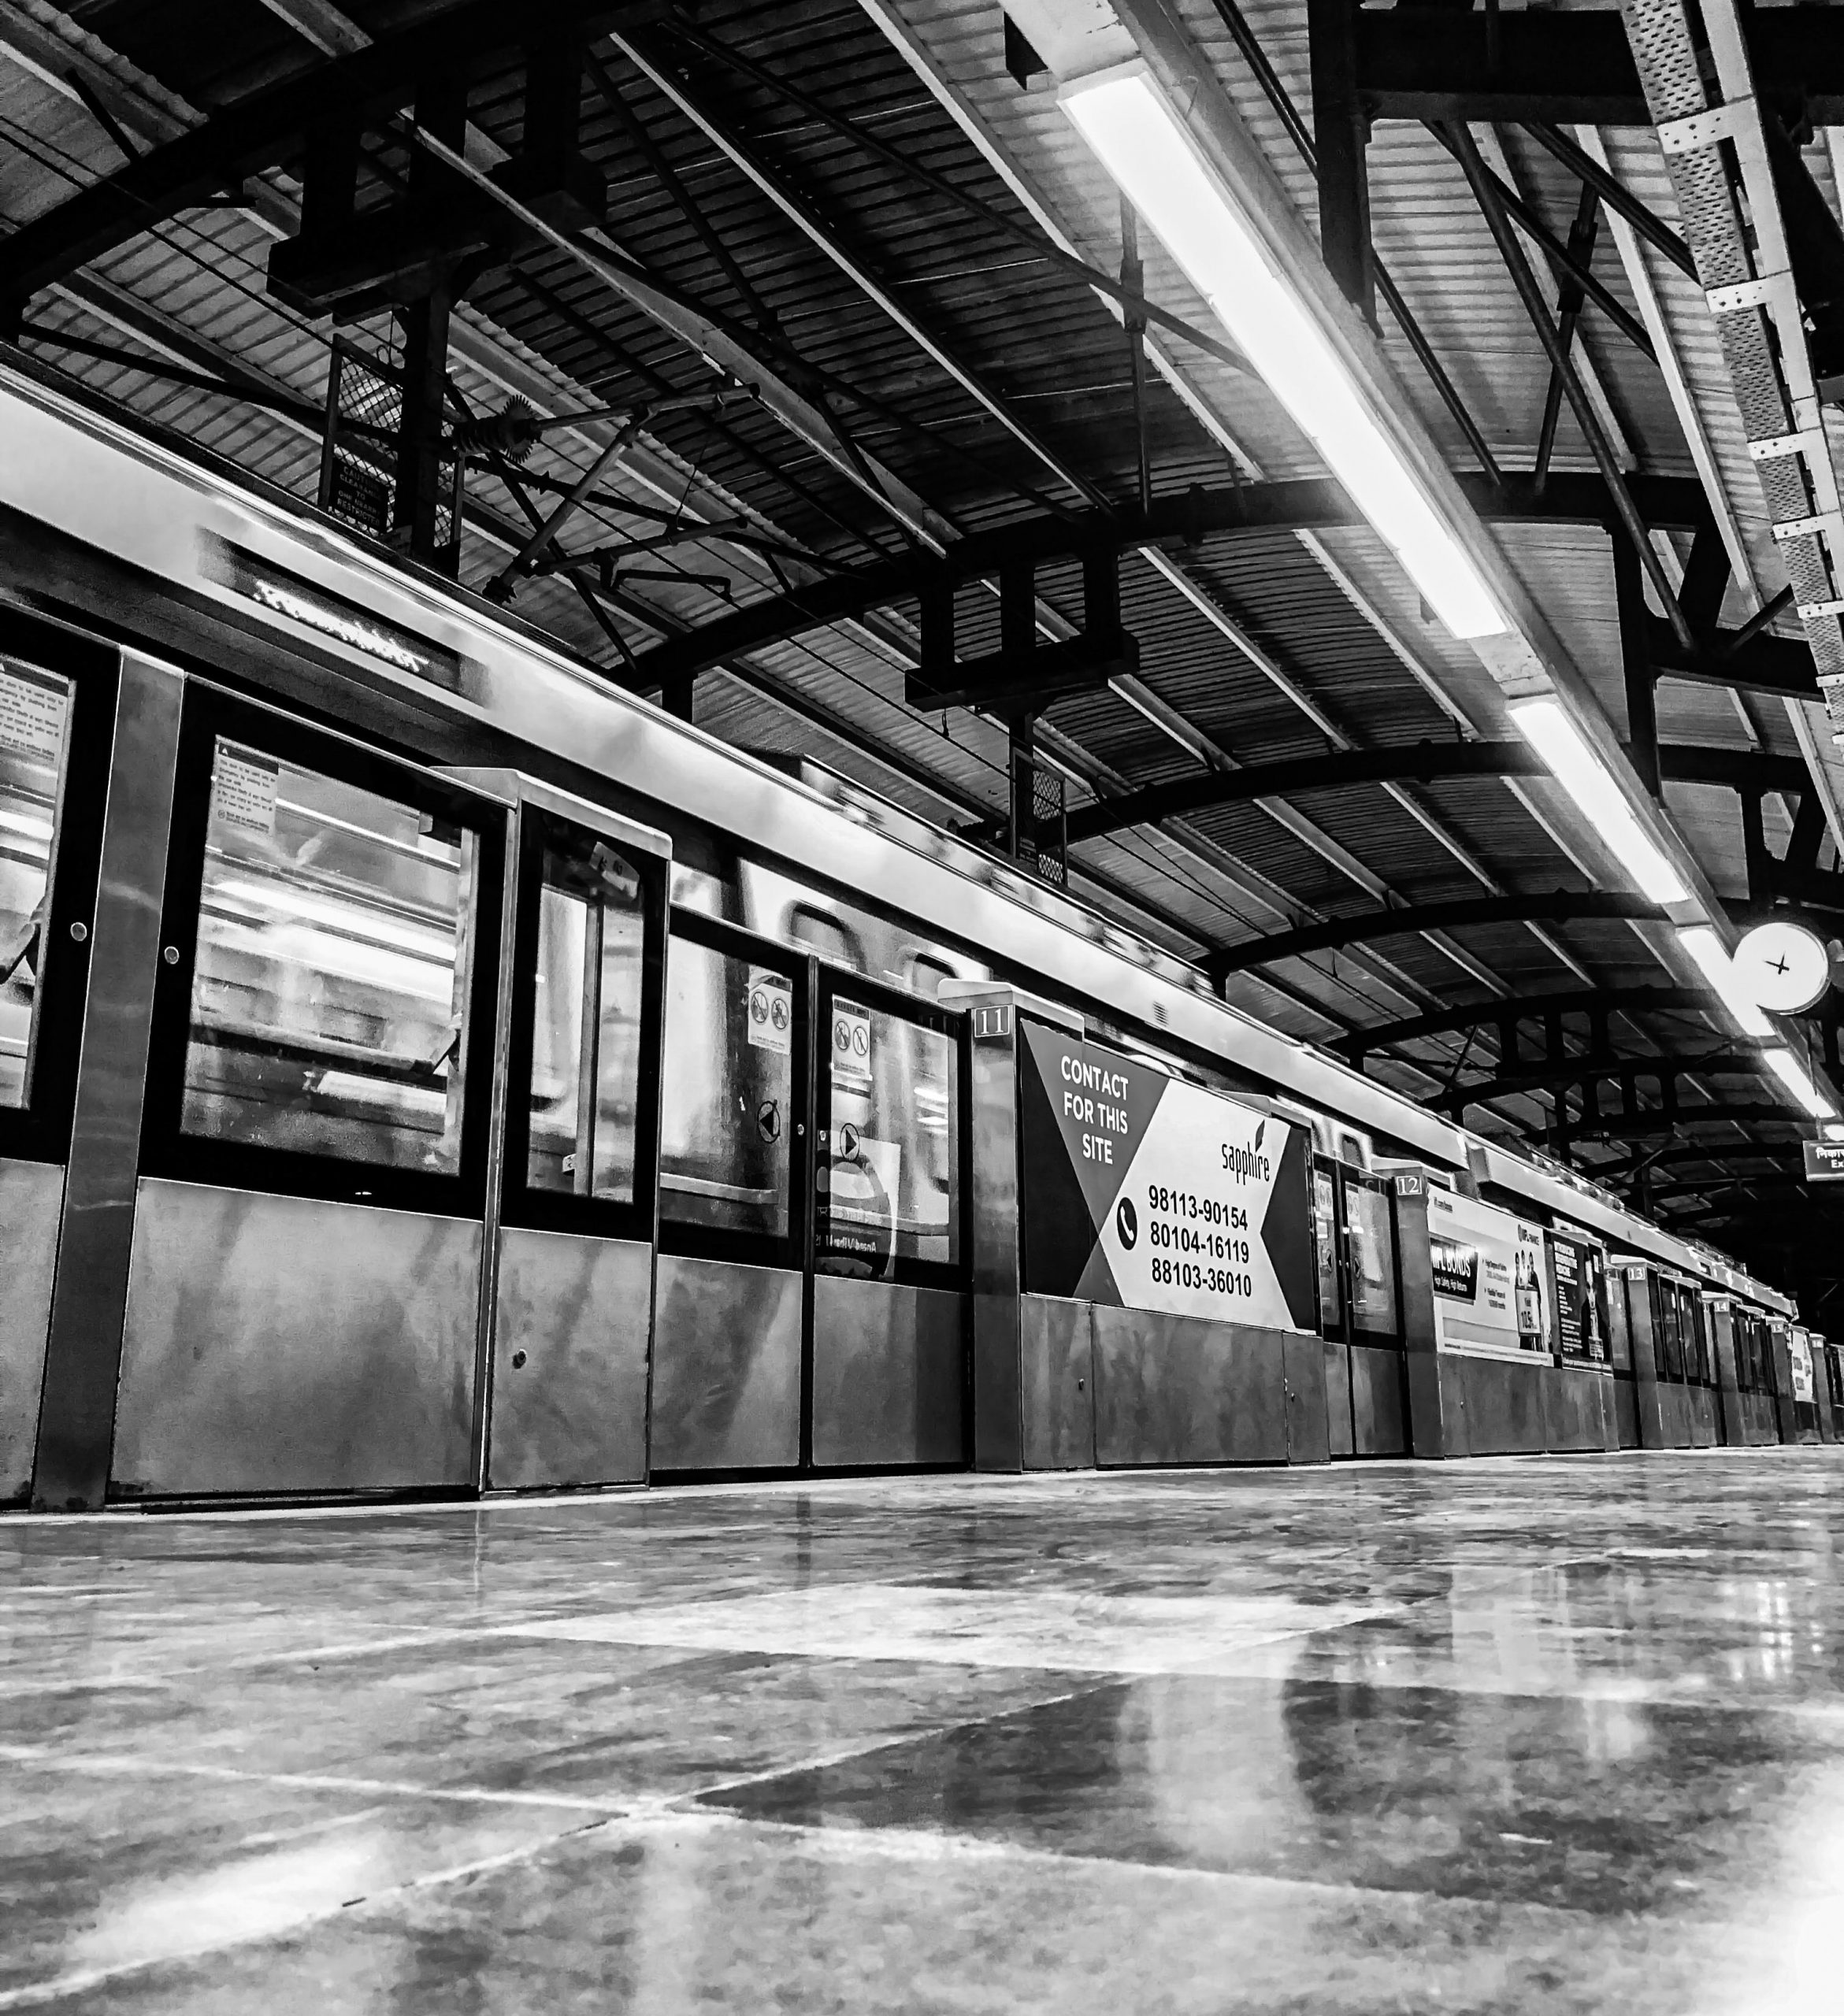 Two days after the yellow line resumed operations, the Delhi Metro's Blue Line and Pink Line are entering the tracks as of today (September 9) as part of the first phase of the gradual resumption of services. . Underground services.